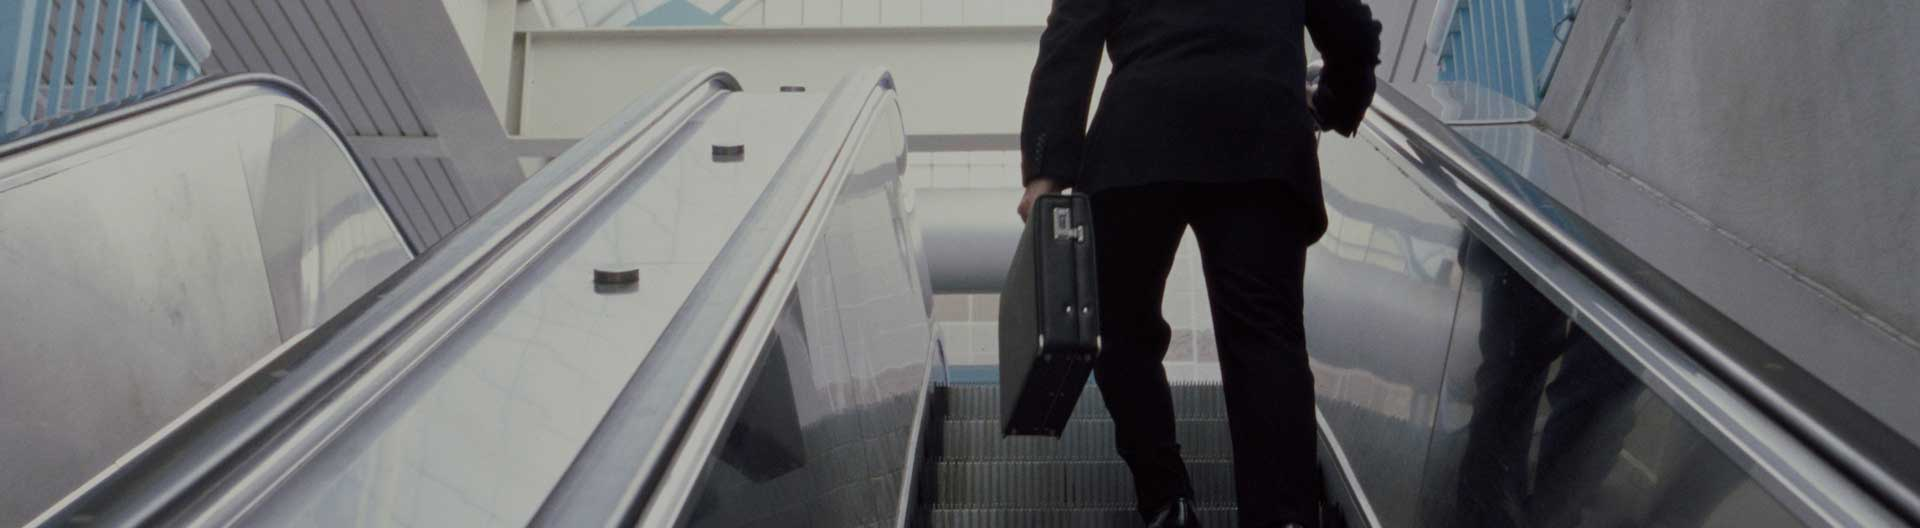 business man going up on escalator